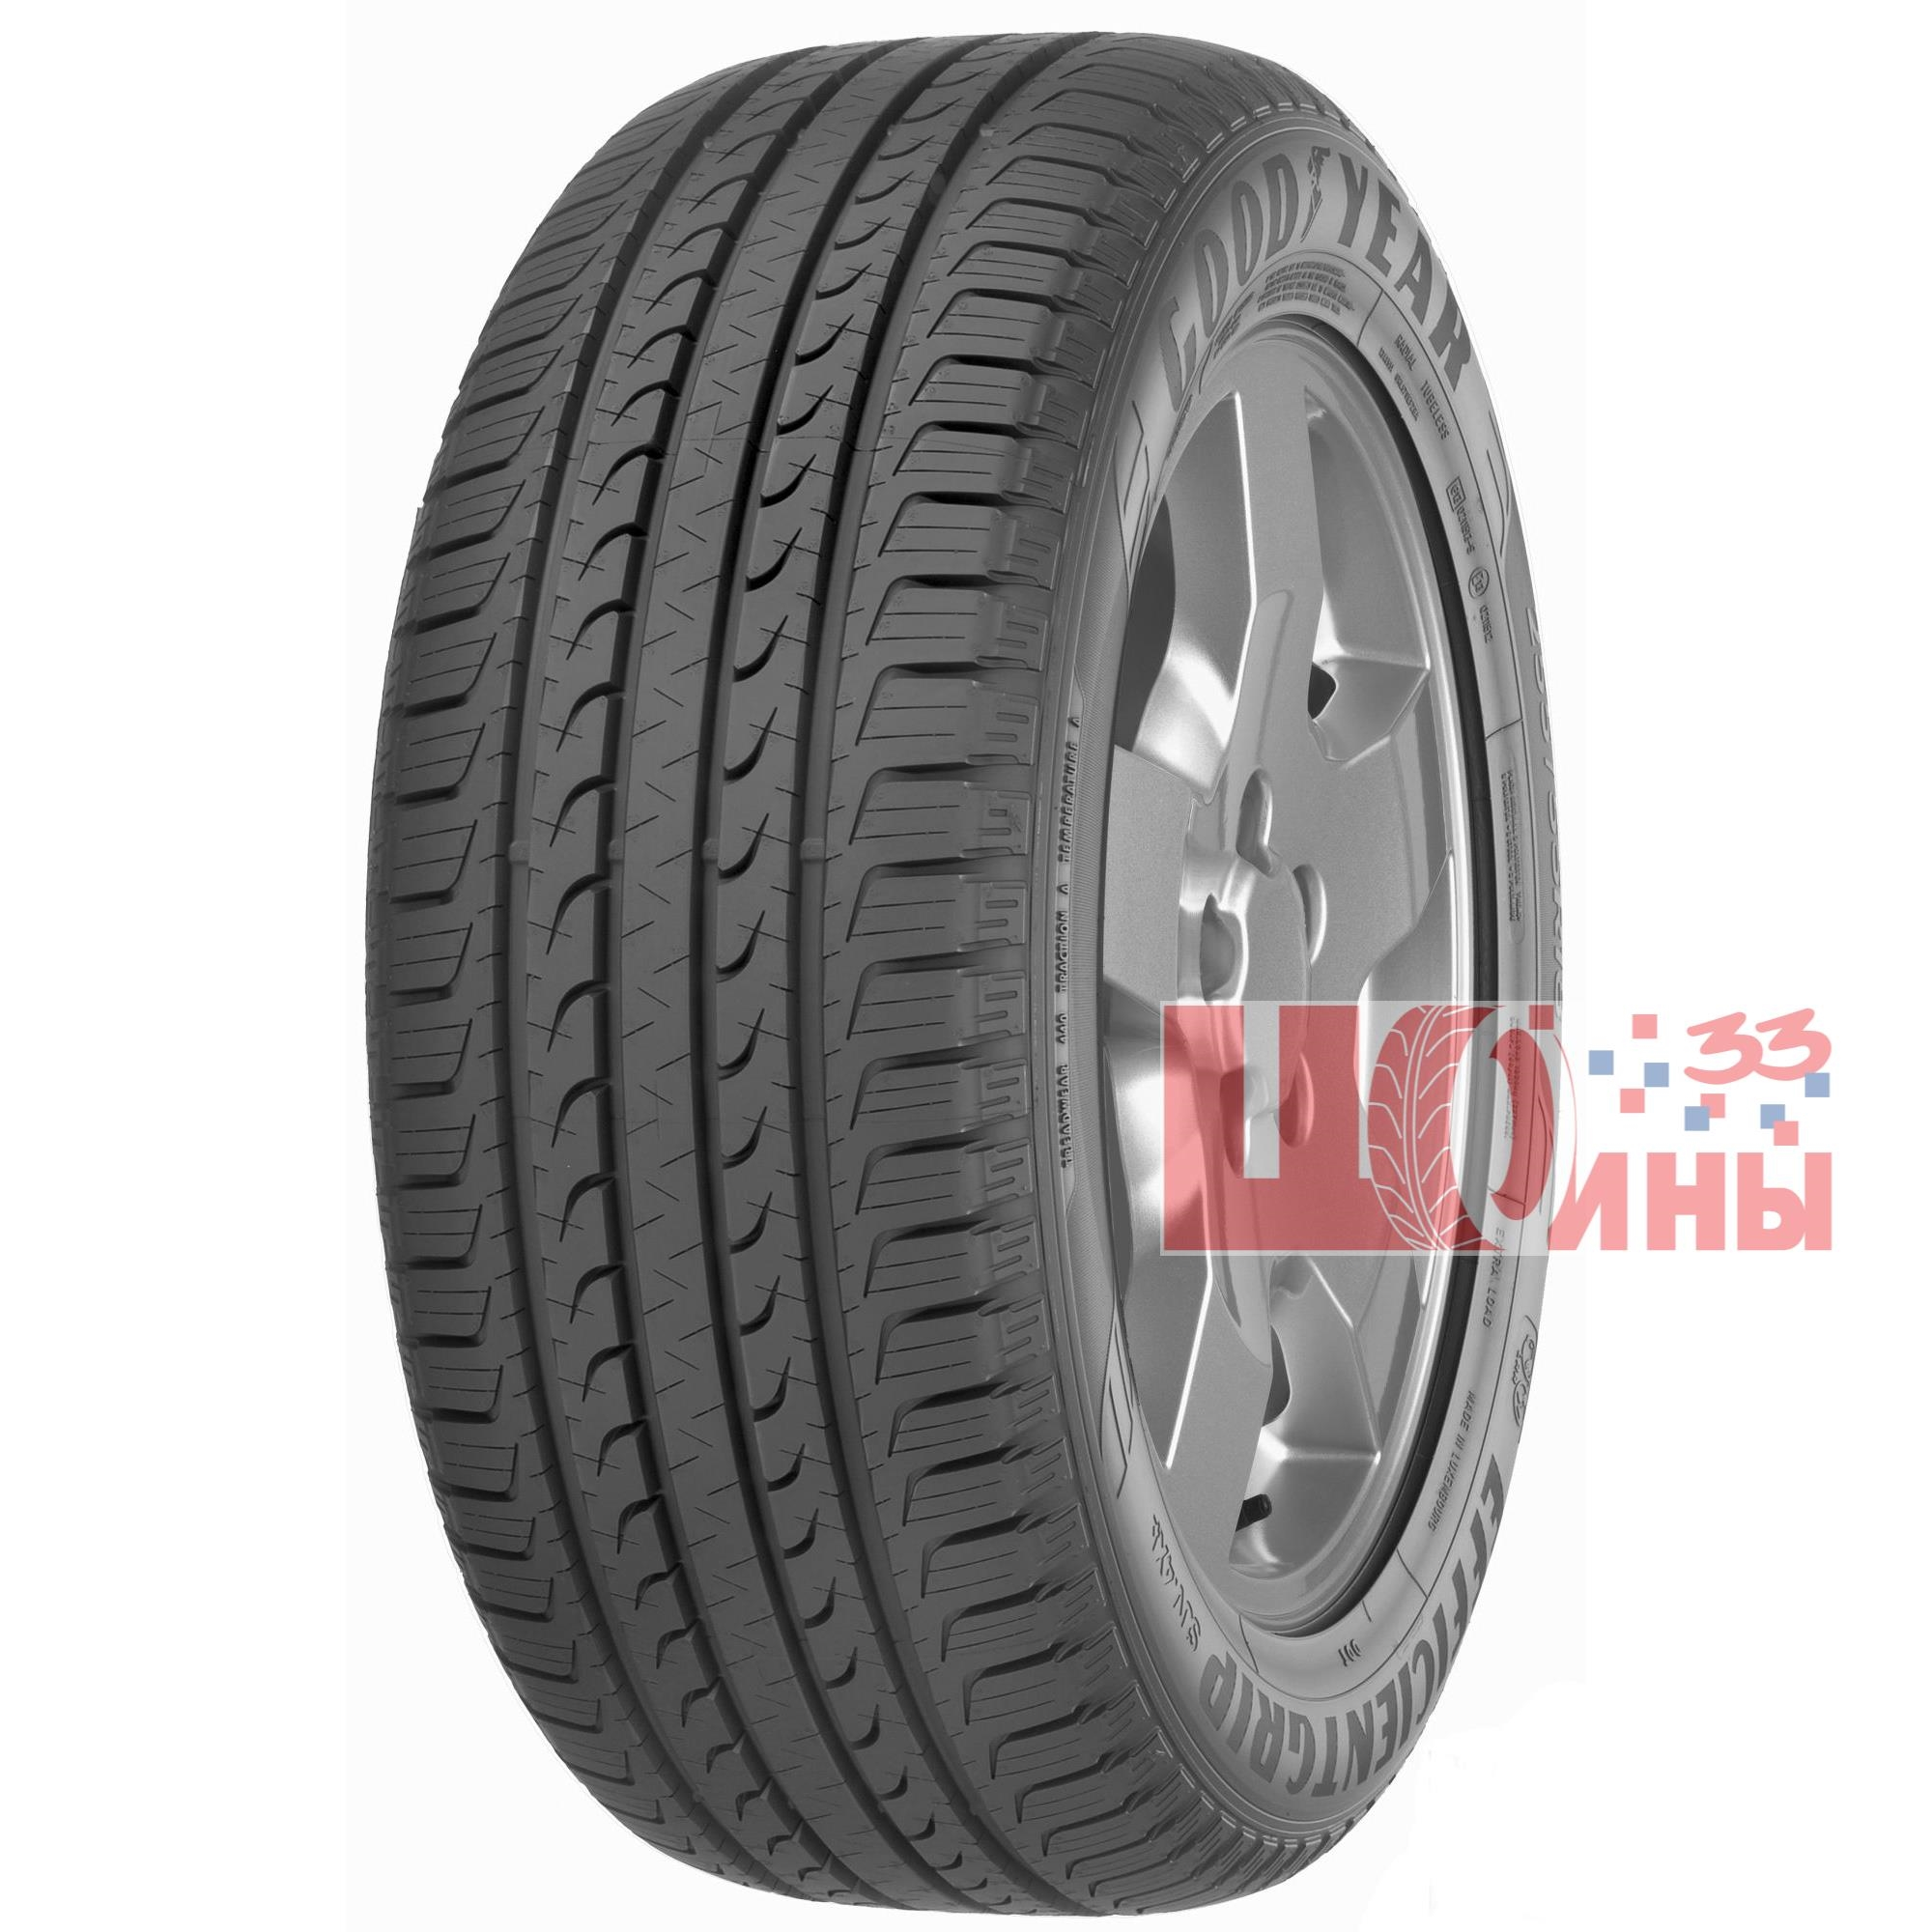 Б/У 215/55 R16 Лето GOODYEAR Efficient Grip Кат. 2